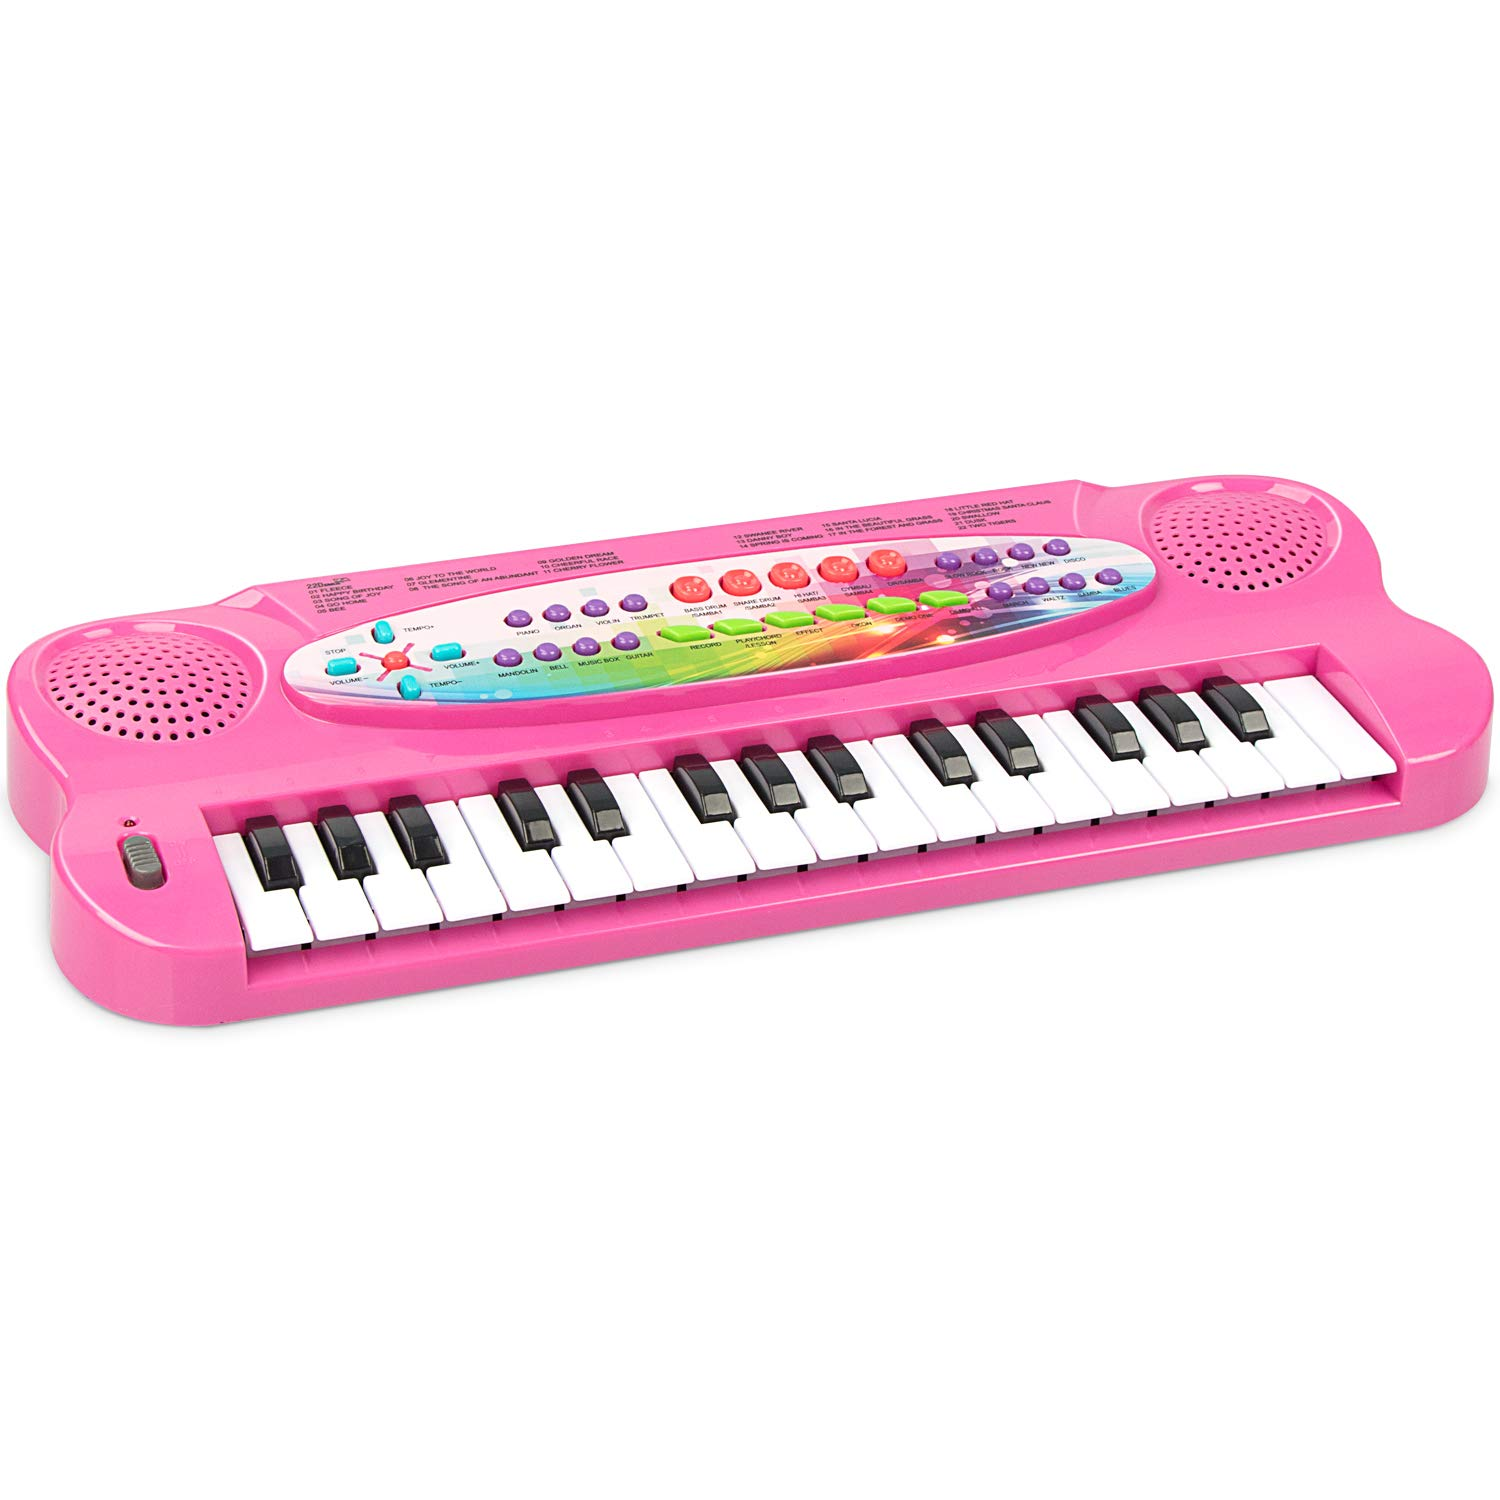 aPerfectLife Kids Piano, 32 Keys Multifunction Electronic Kids Piano Keyboard Musial Instrument for Kids with Microphone (Pink)